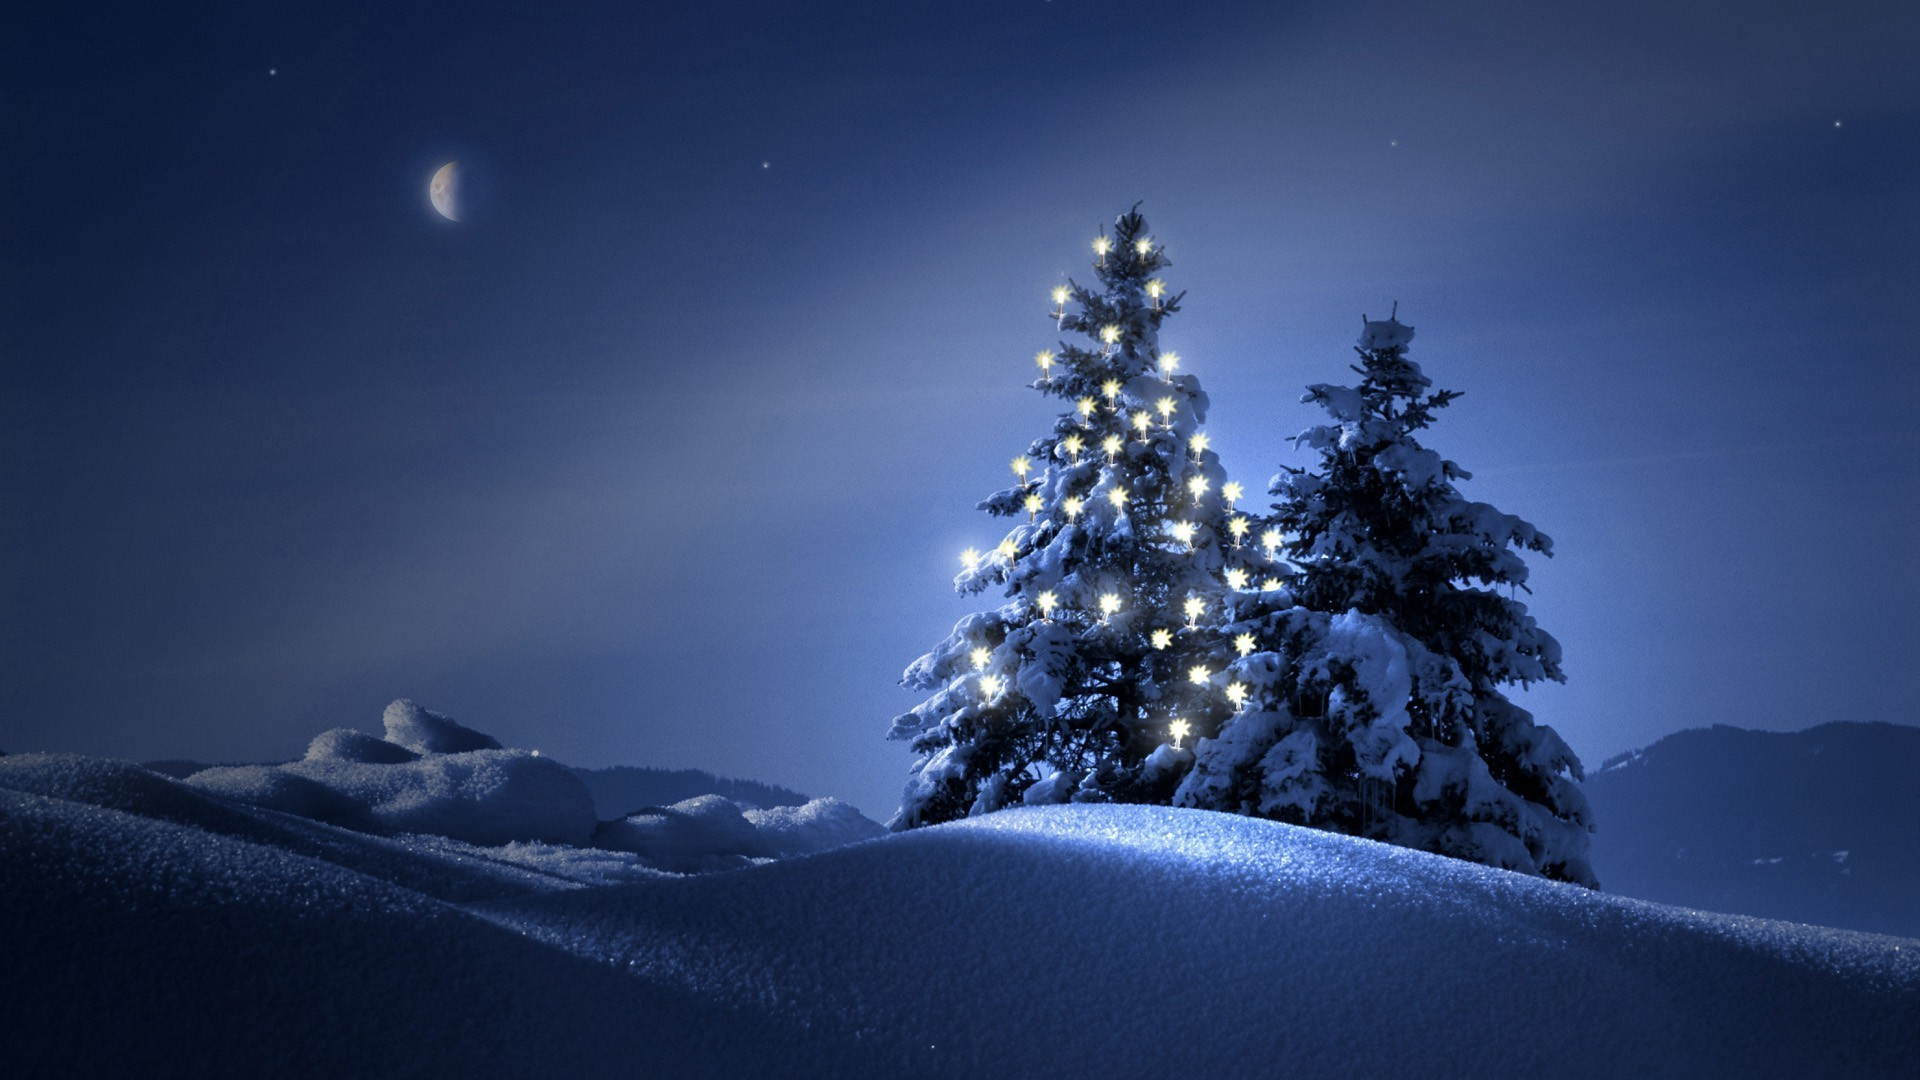 snowy christmas scenes wallpaper  48  images